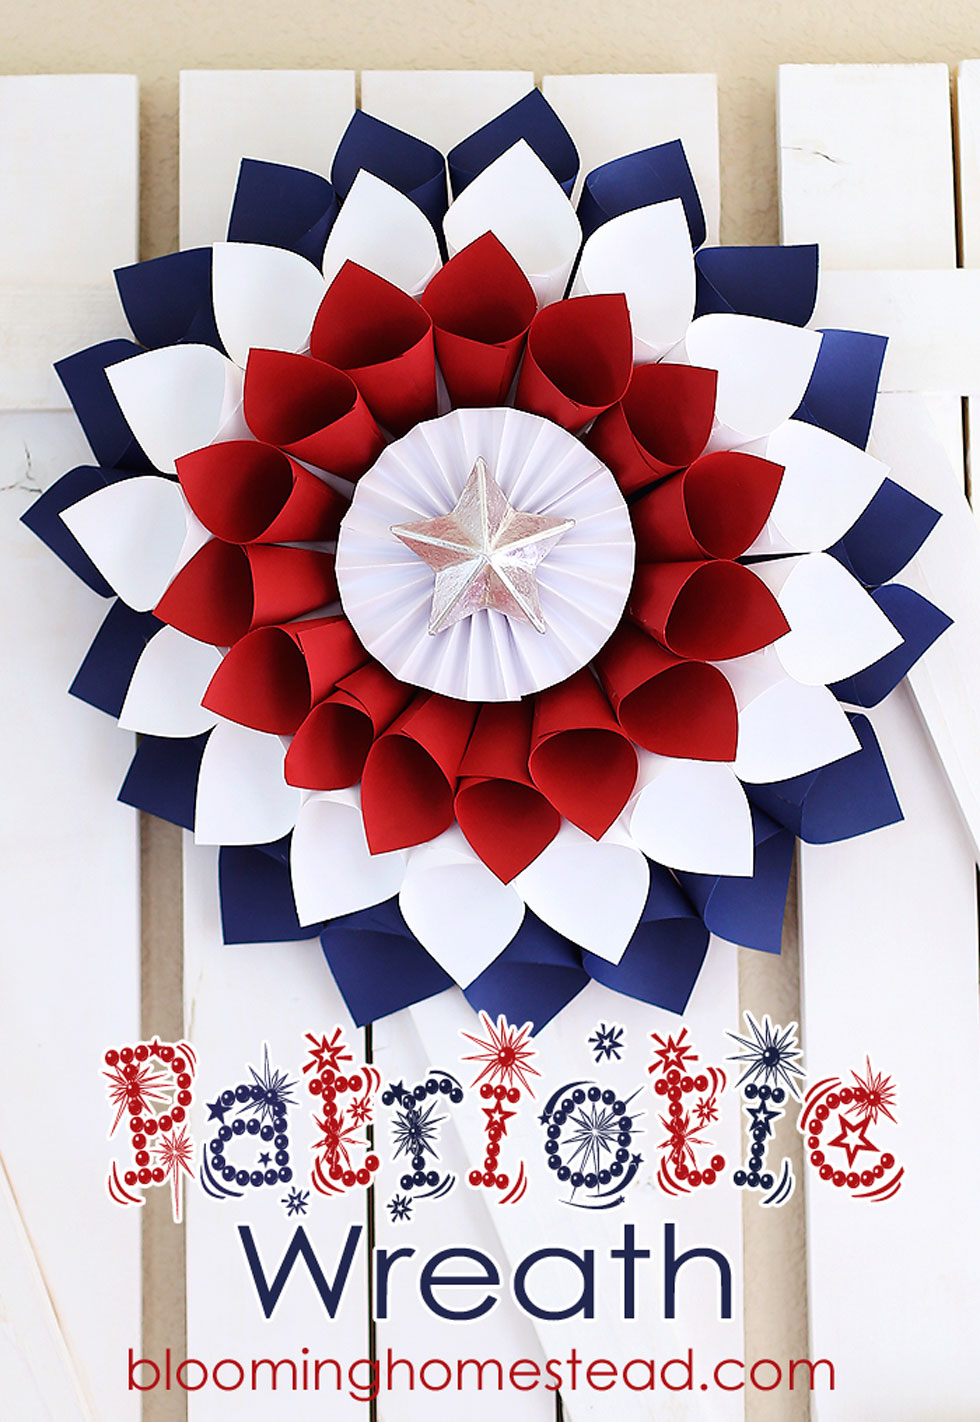 26 easy 4th of july crafts patriotic craft ideas diy decorations for fourth of july - 4th Of July Decorations